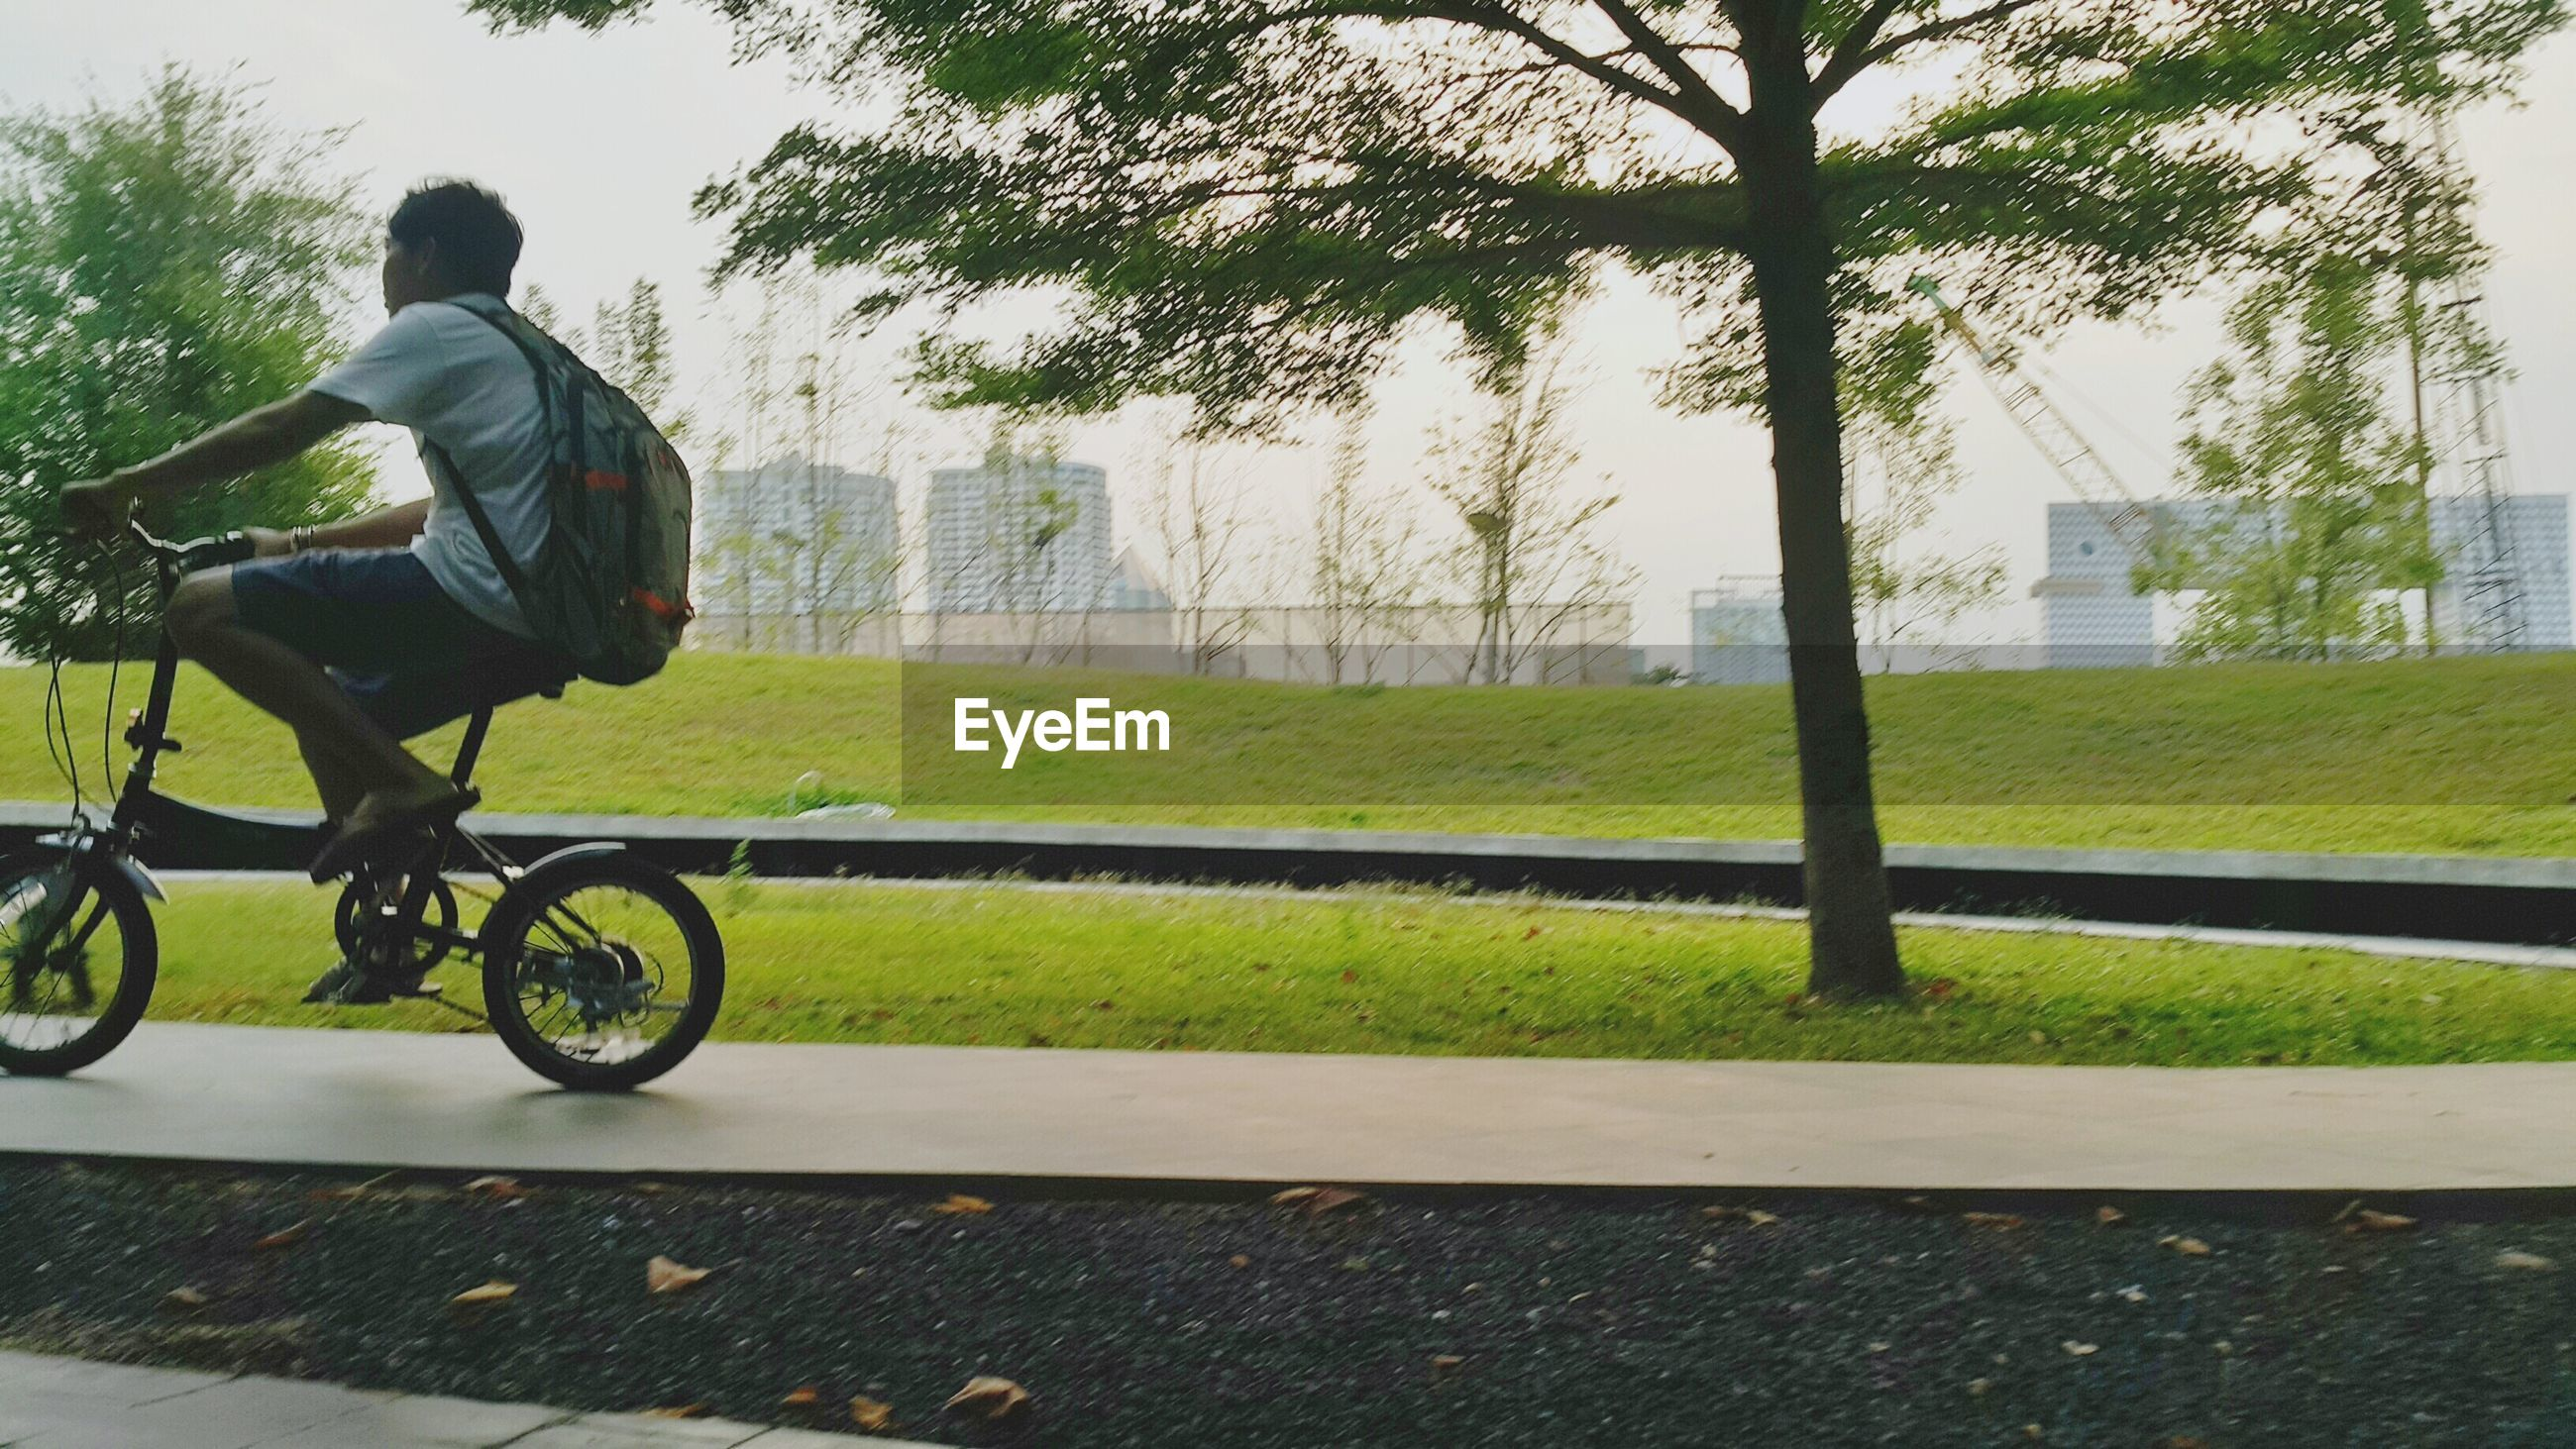 lifestyles, leisure activity, bicycle, men, grass, tree, full length, street, land vehicle, road, transportation, side view, park - man made space, riding, cycling, day, casual clothing, sunlight